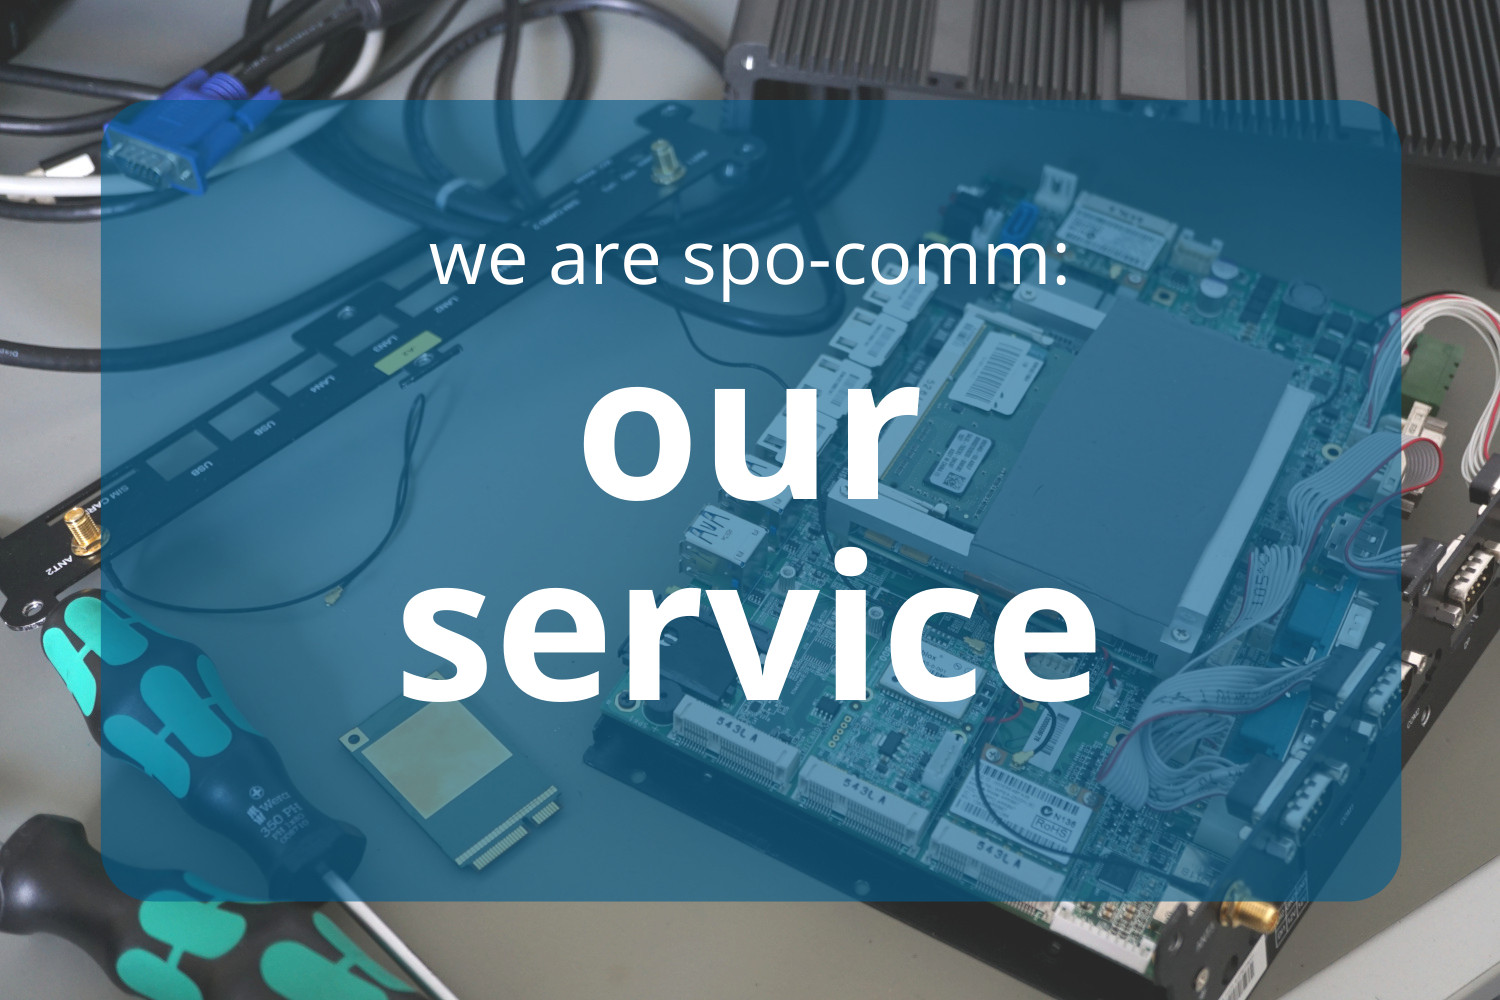 More than just support: Our service department